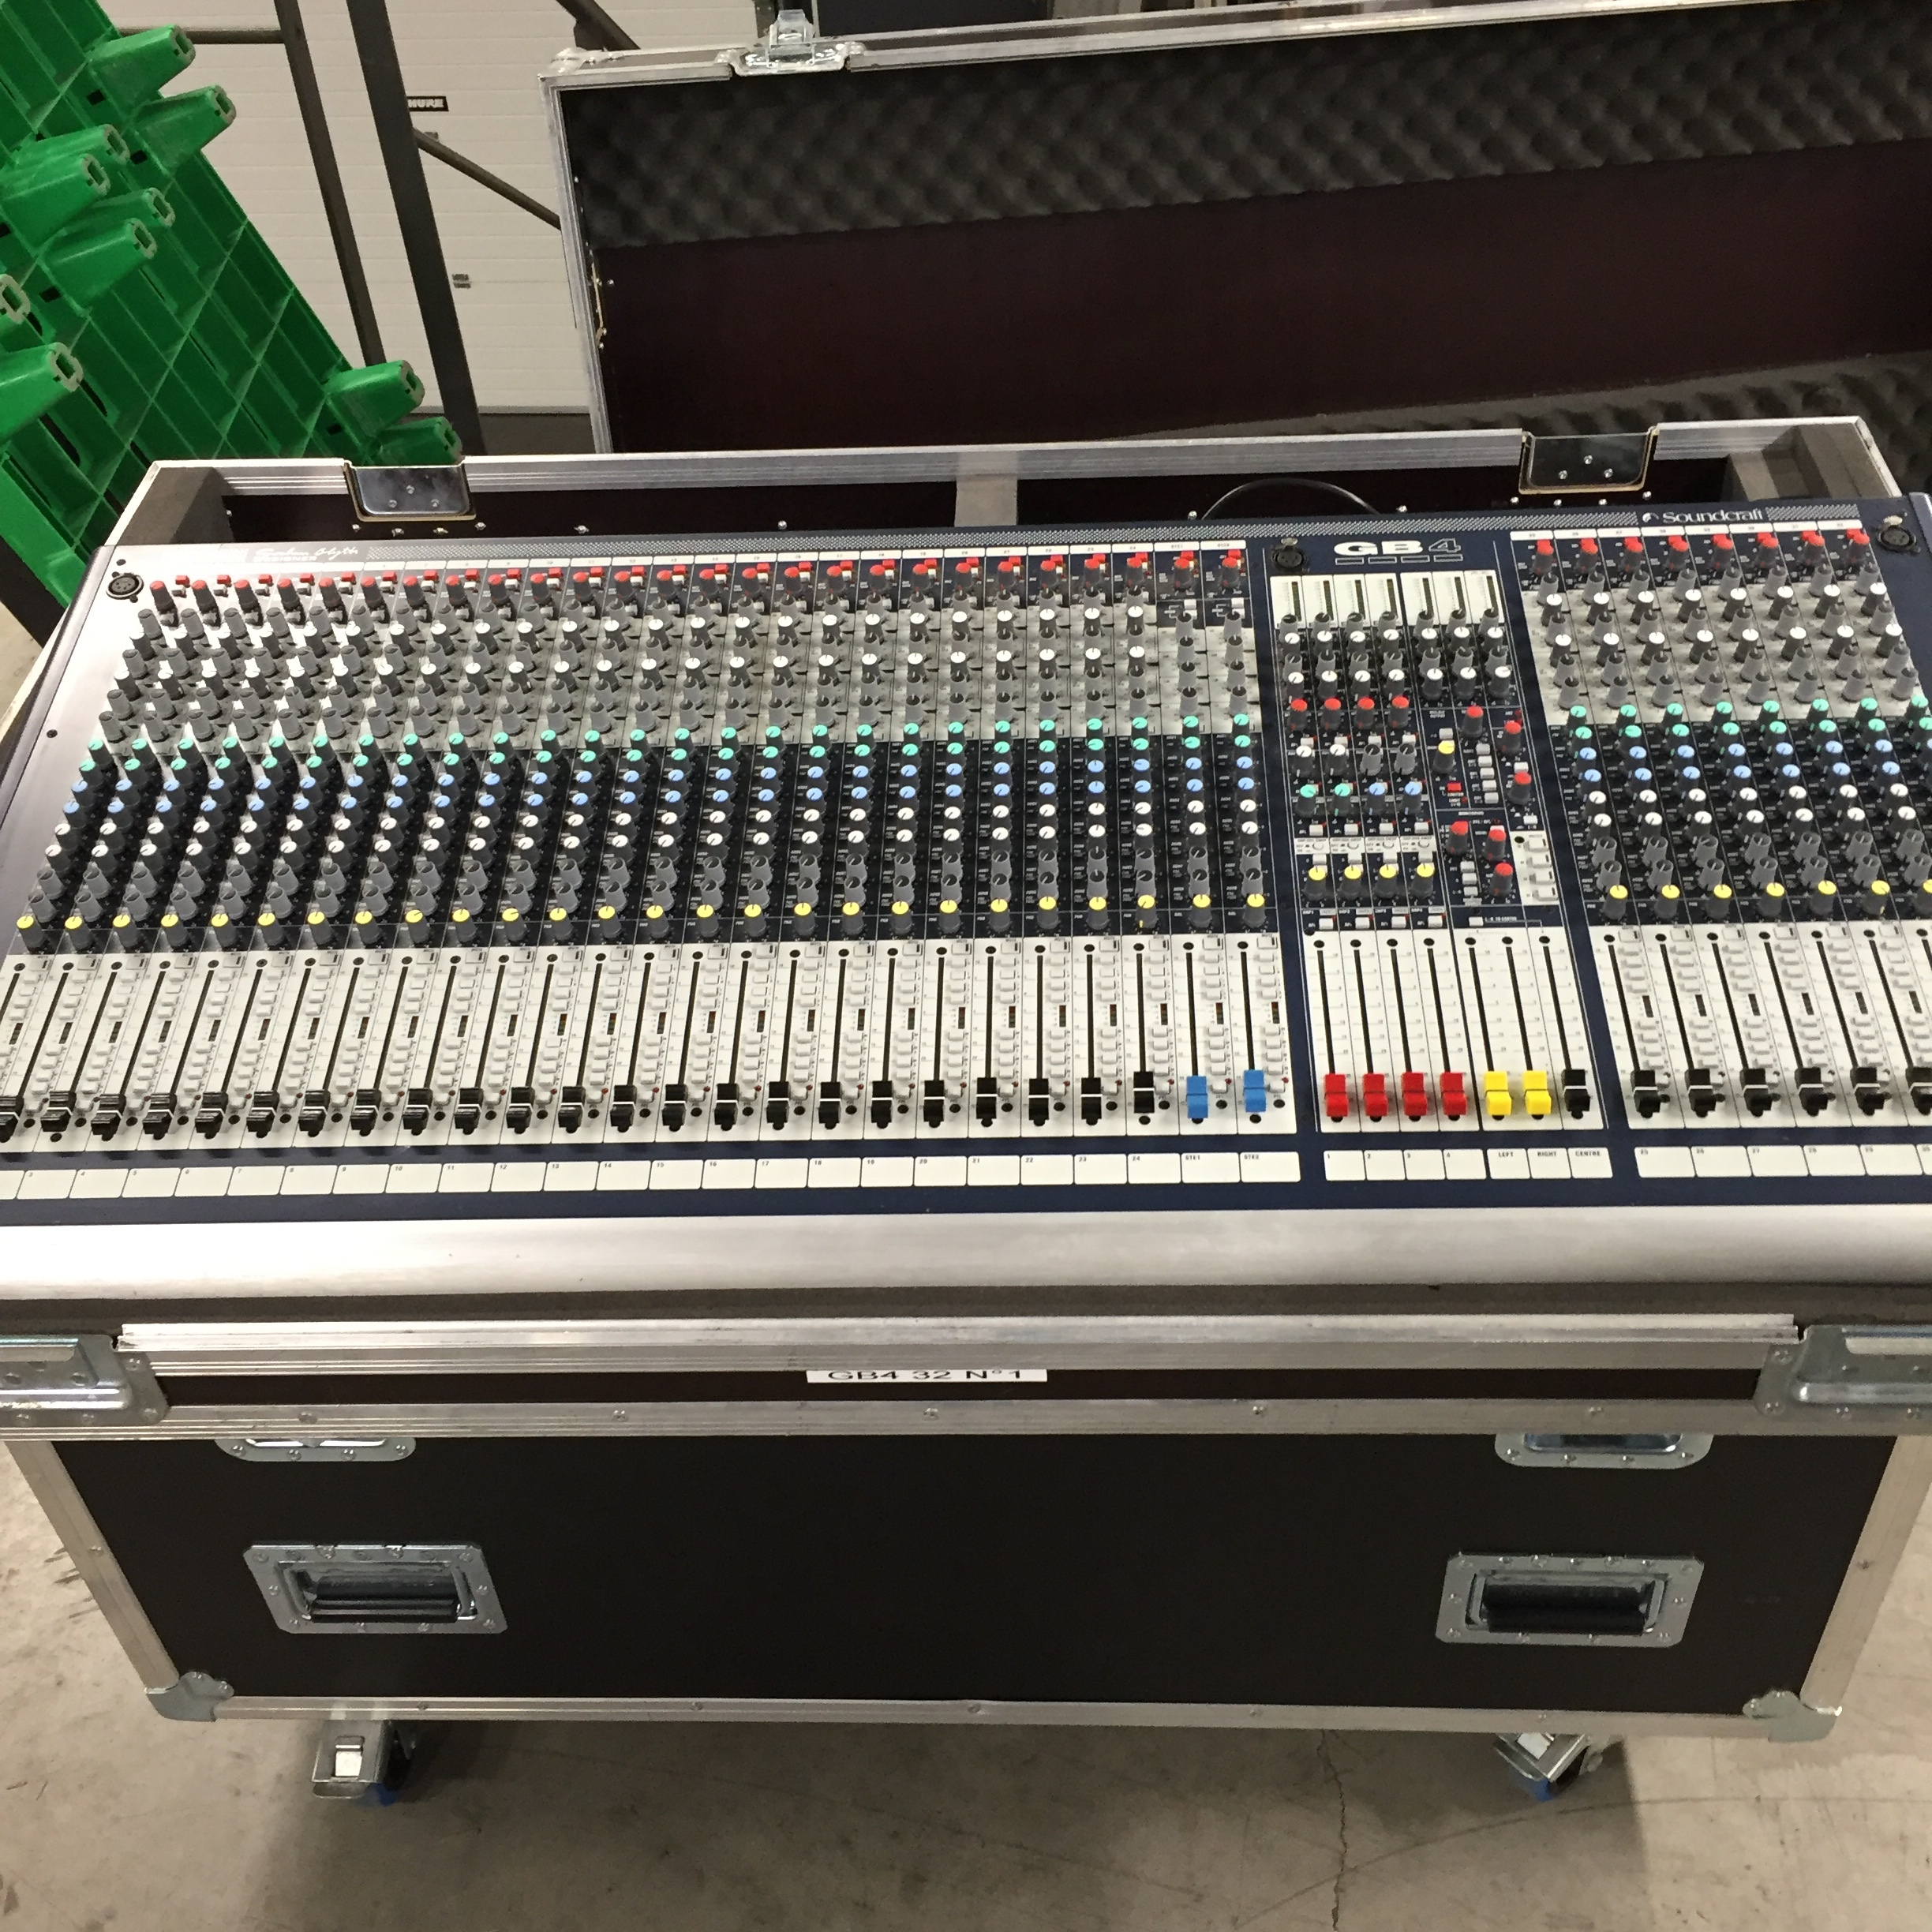 Magasin Console Occasion Achat Occasion Soundcraft Gb4 32 Rhône Alpes Audiofanzine